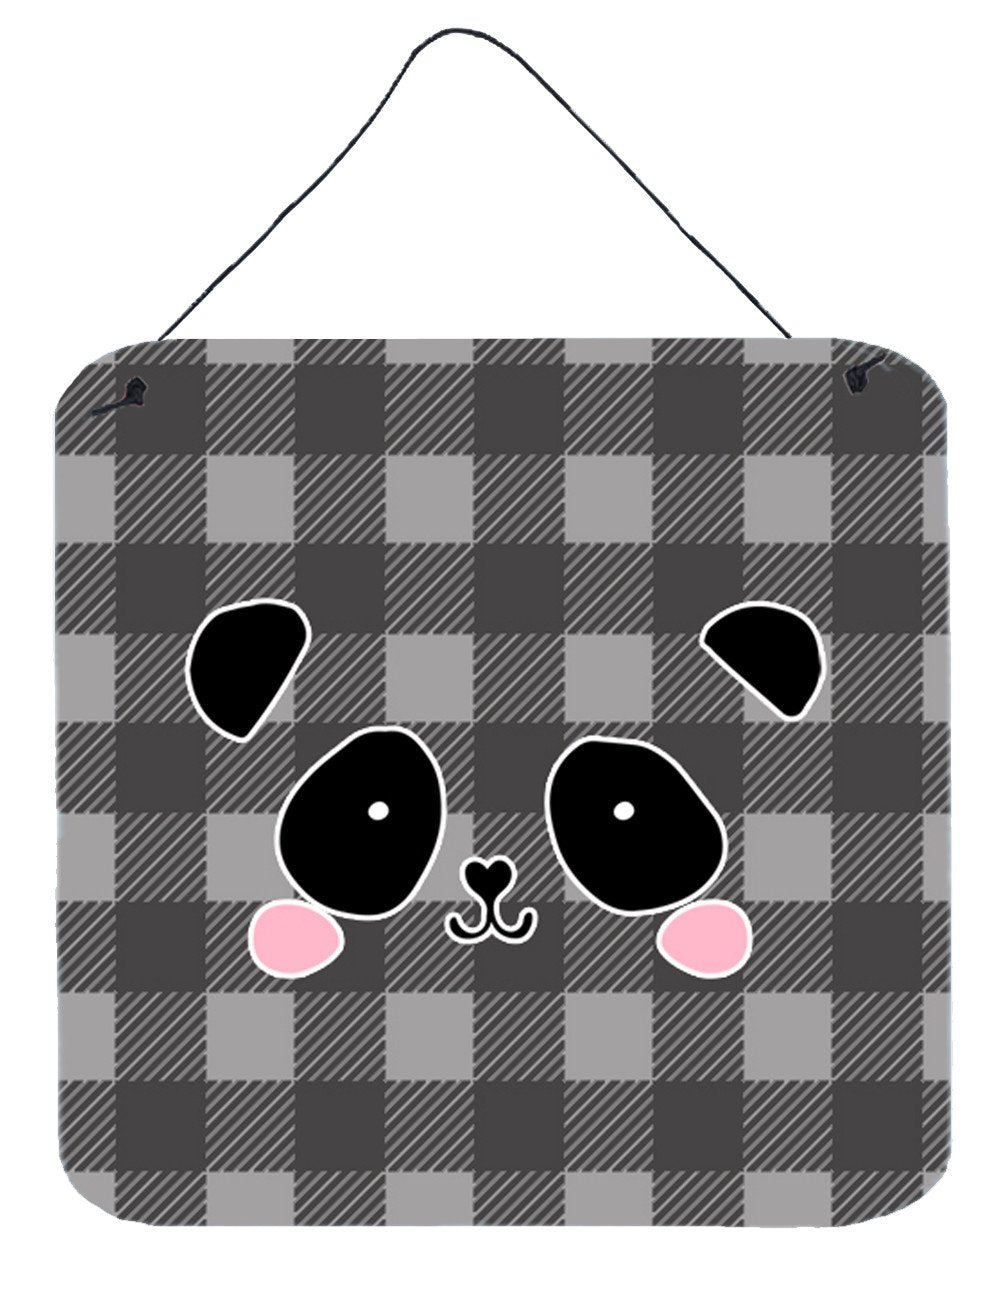 Panda Bear Face Wall or Door Hanging Prints BB7036DS66 by Caroline's Treasures